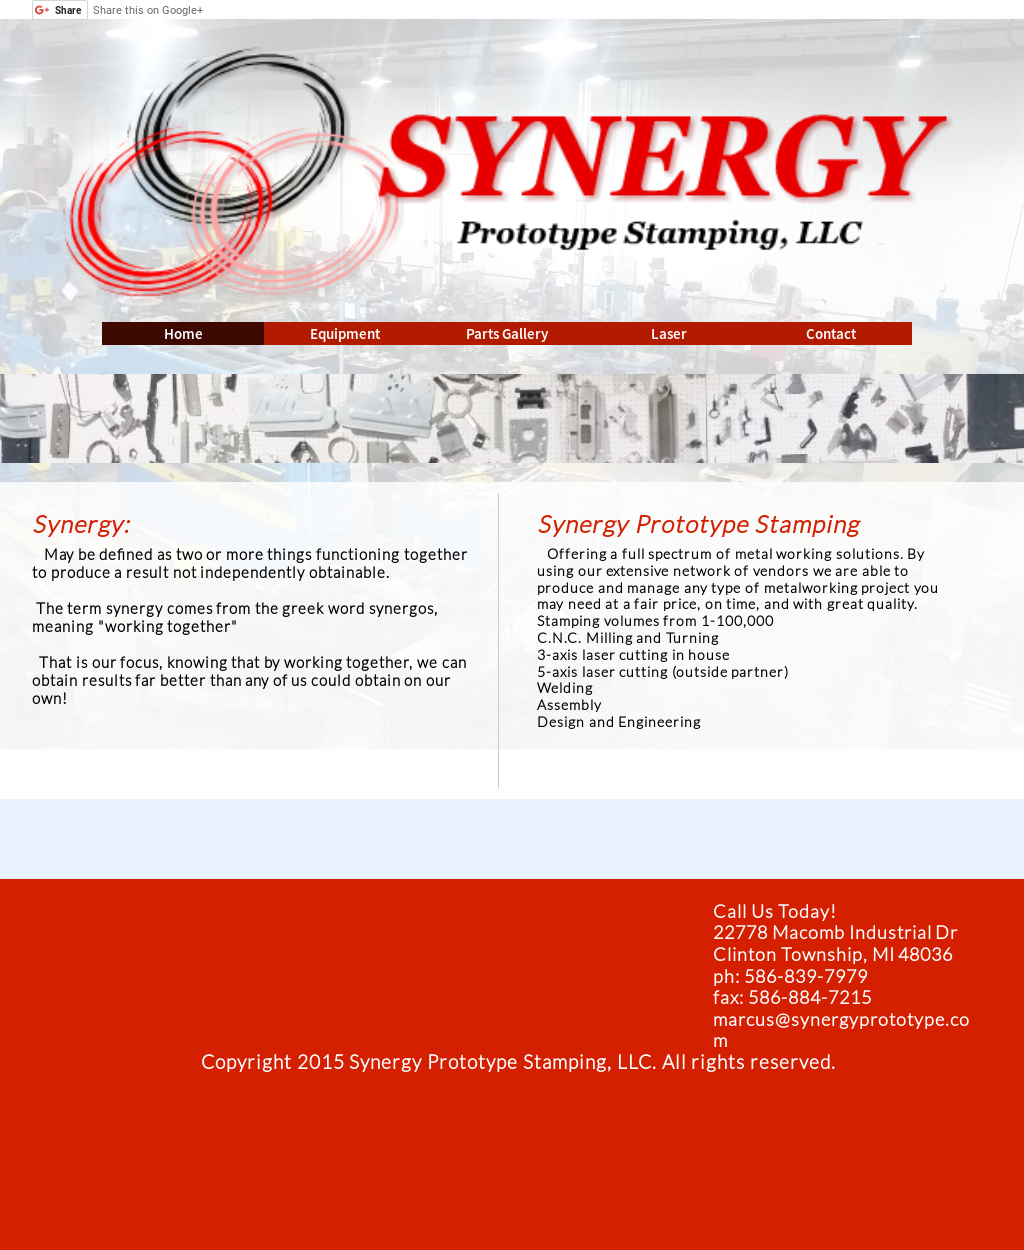 Synergy Prototype Stamping Competitors, Revenue and